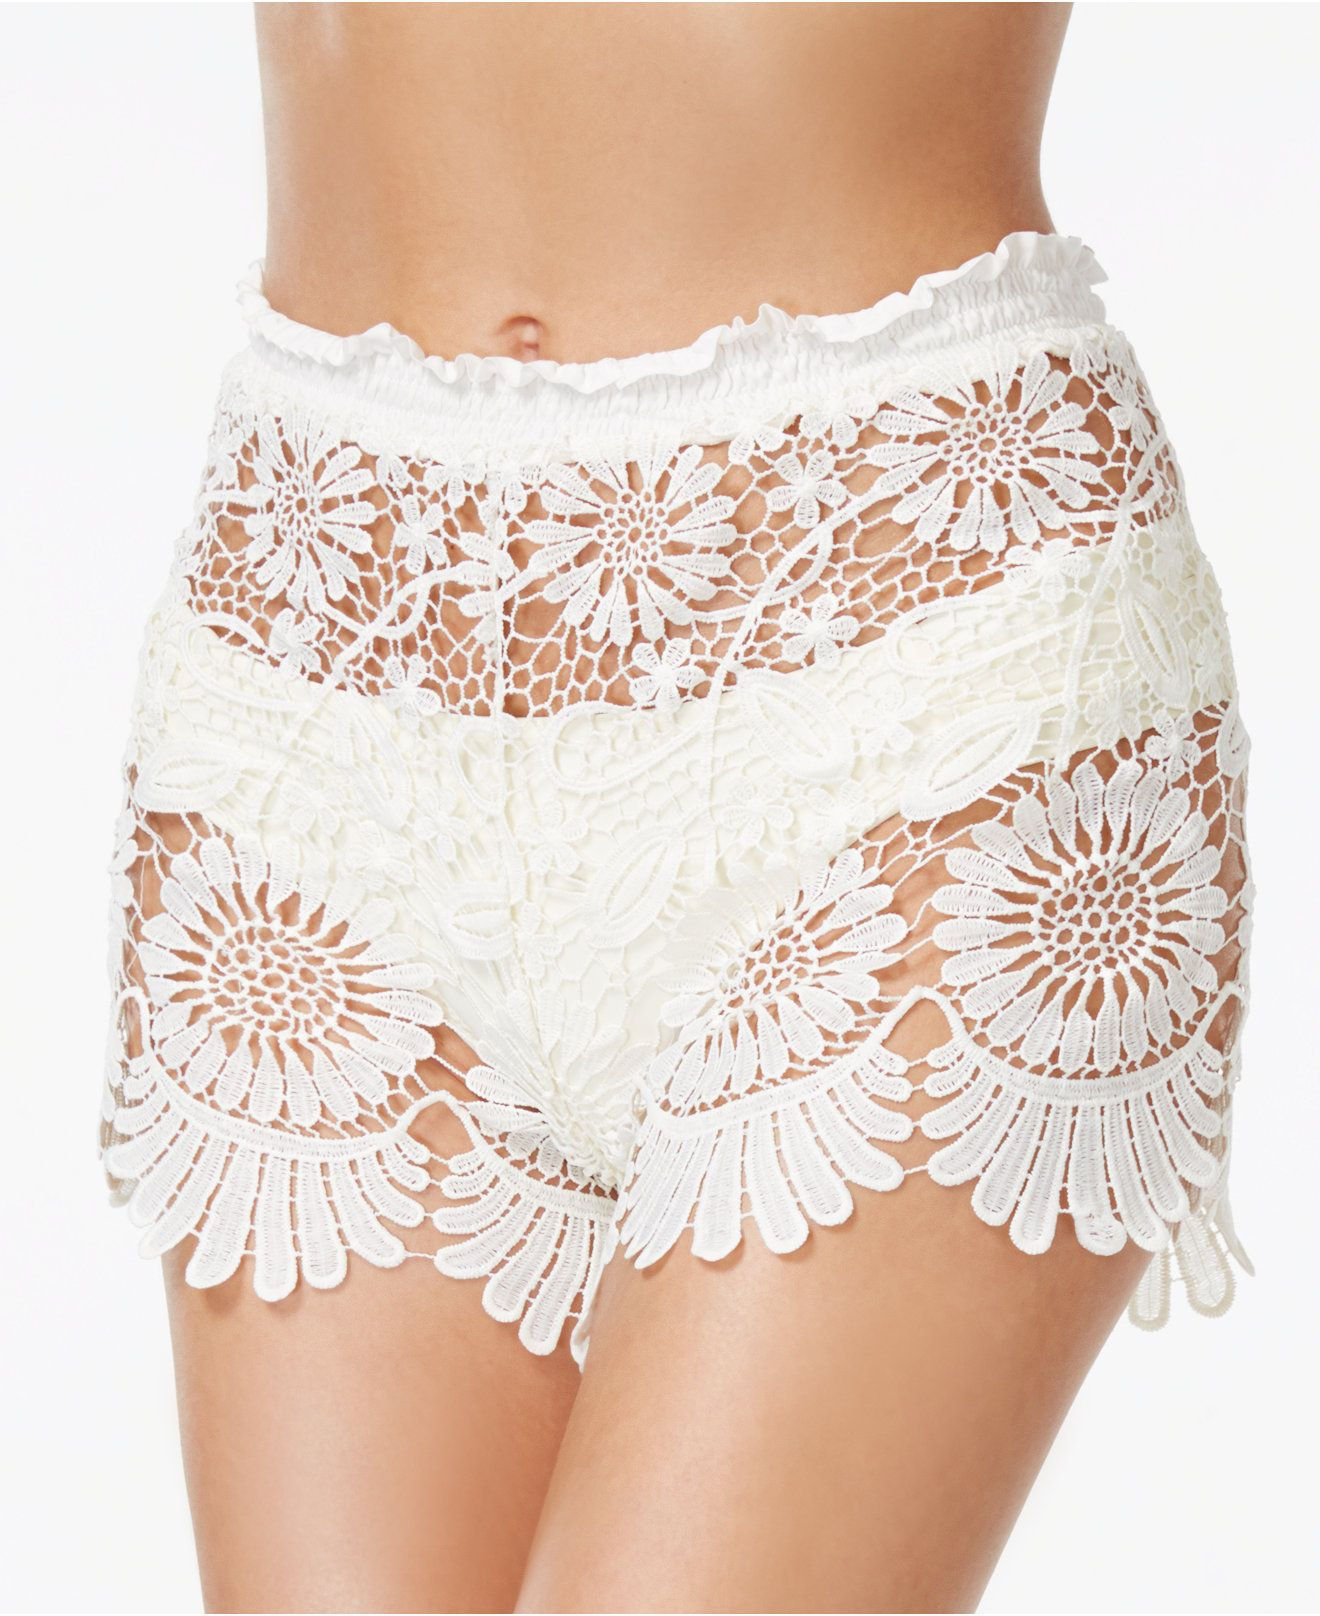 7ebd7ac281 Jessica Simpson Sheer Lace Cover-Up Shorts - Swimwear - Women - Macy's